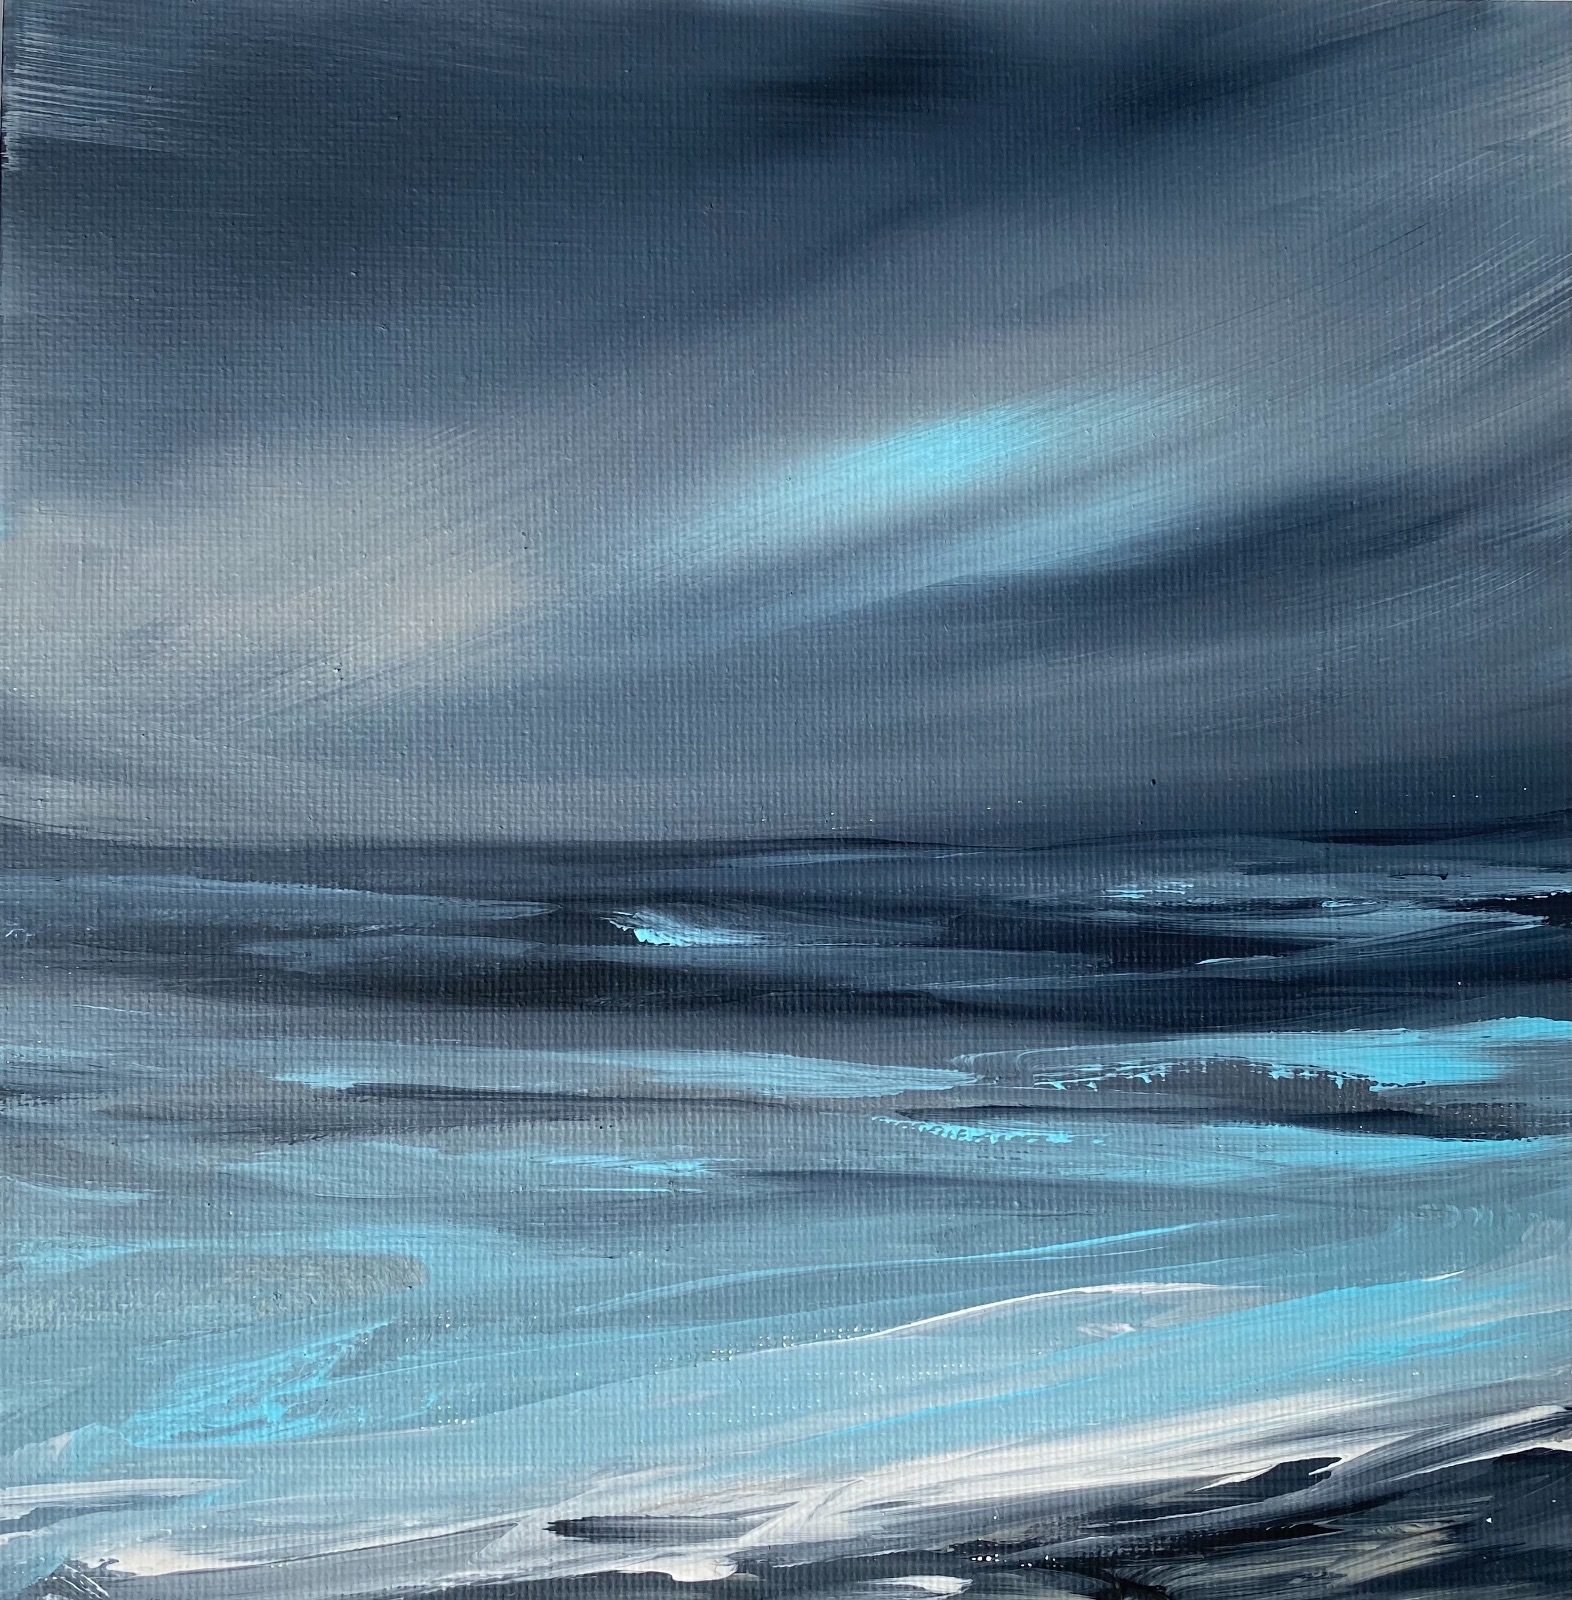 Abstract seascape 4